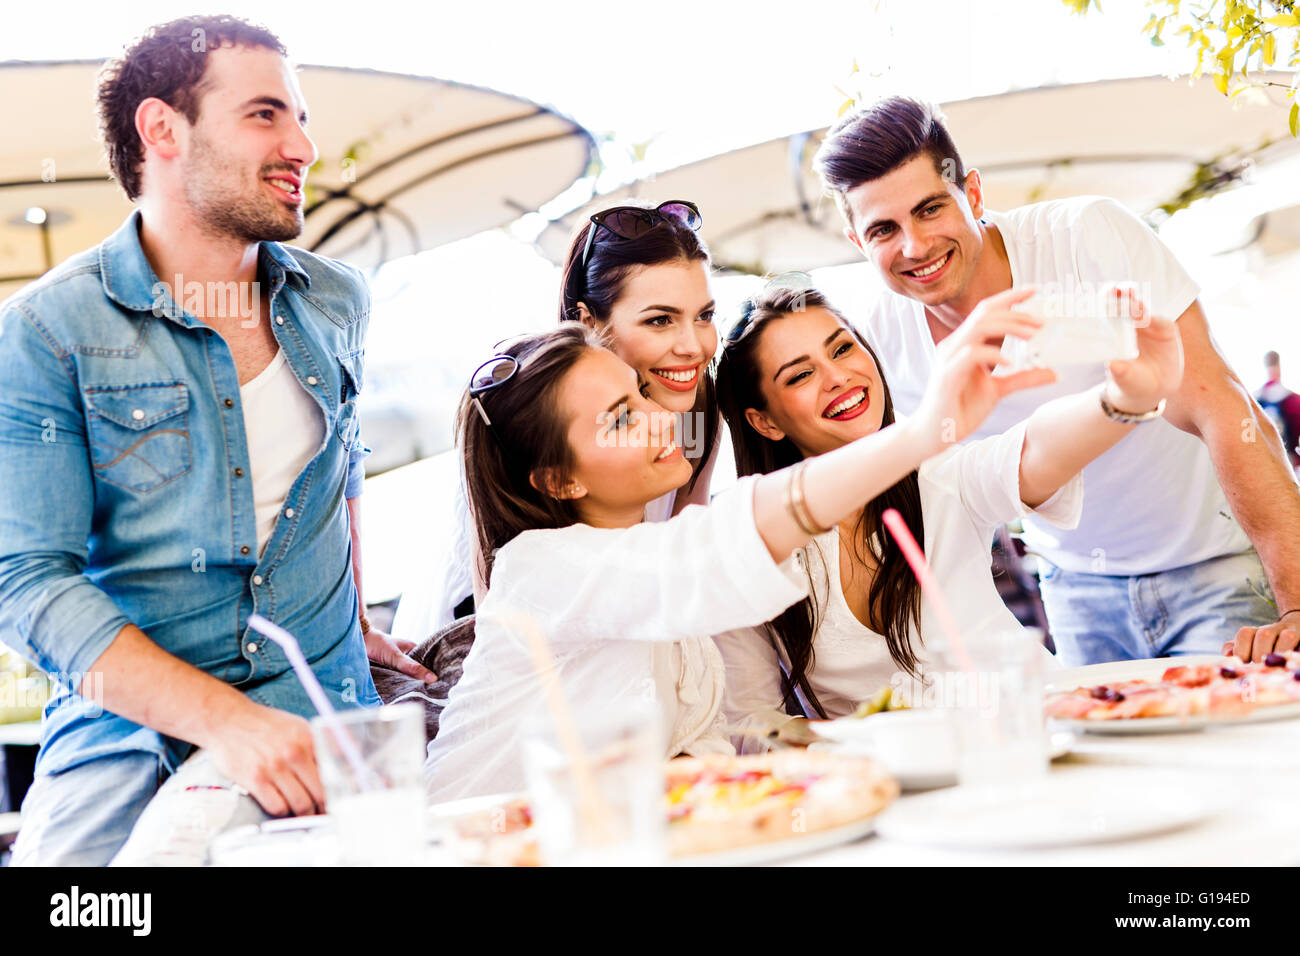 Group of young beautiful people sitting in a restaurant and taking a selfie while smiling - Stock Image